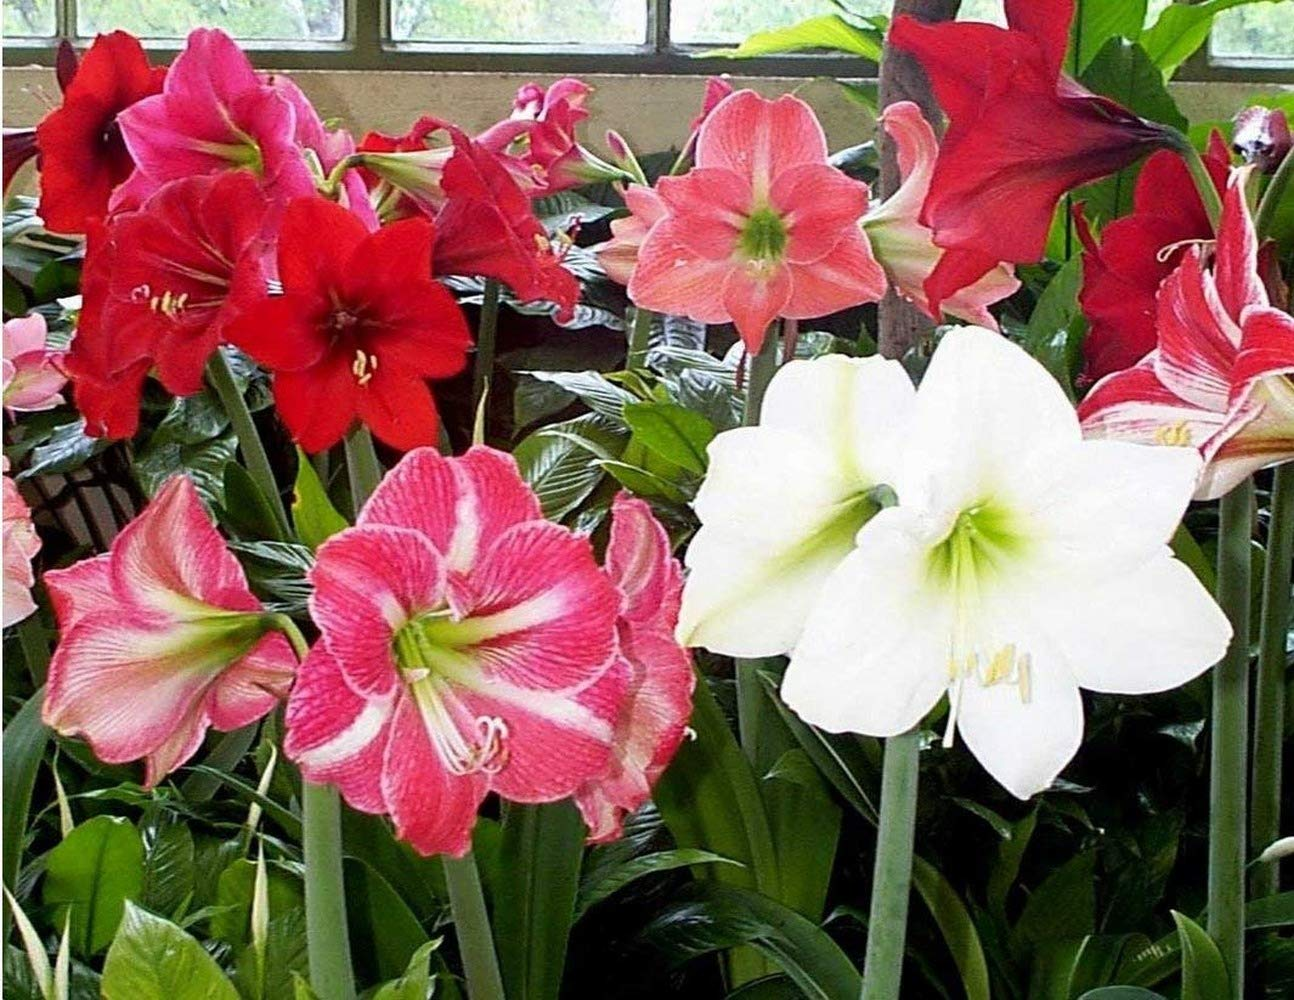 3 Amaryllis Bulbs Are Suitable for Decoration Balcony Gardening and House